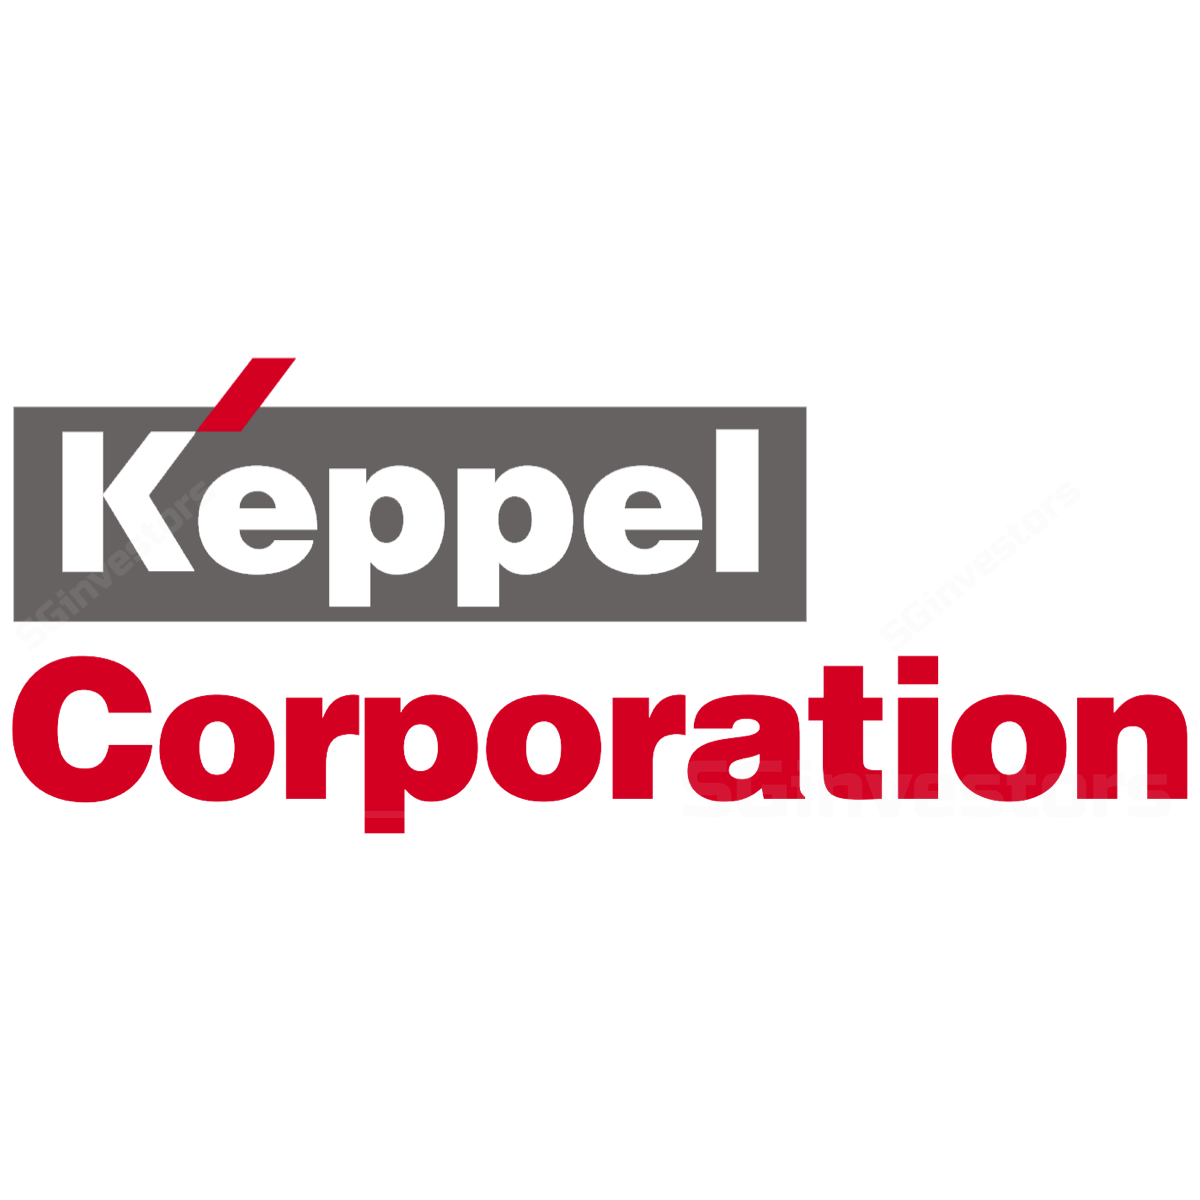 Keppel Corp - RHB Invest 2017-10-23: Tougher Than Before